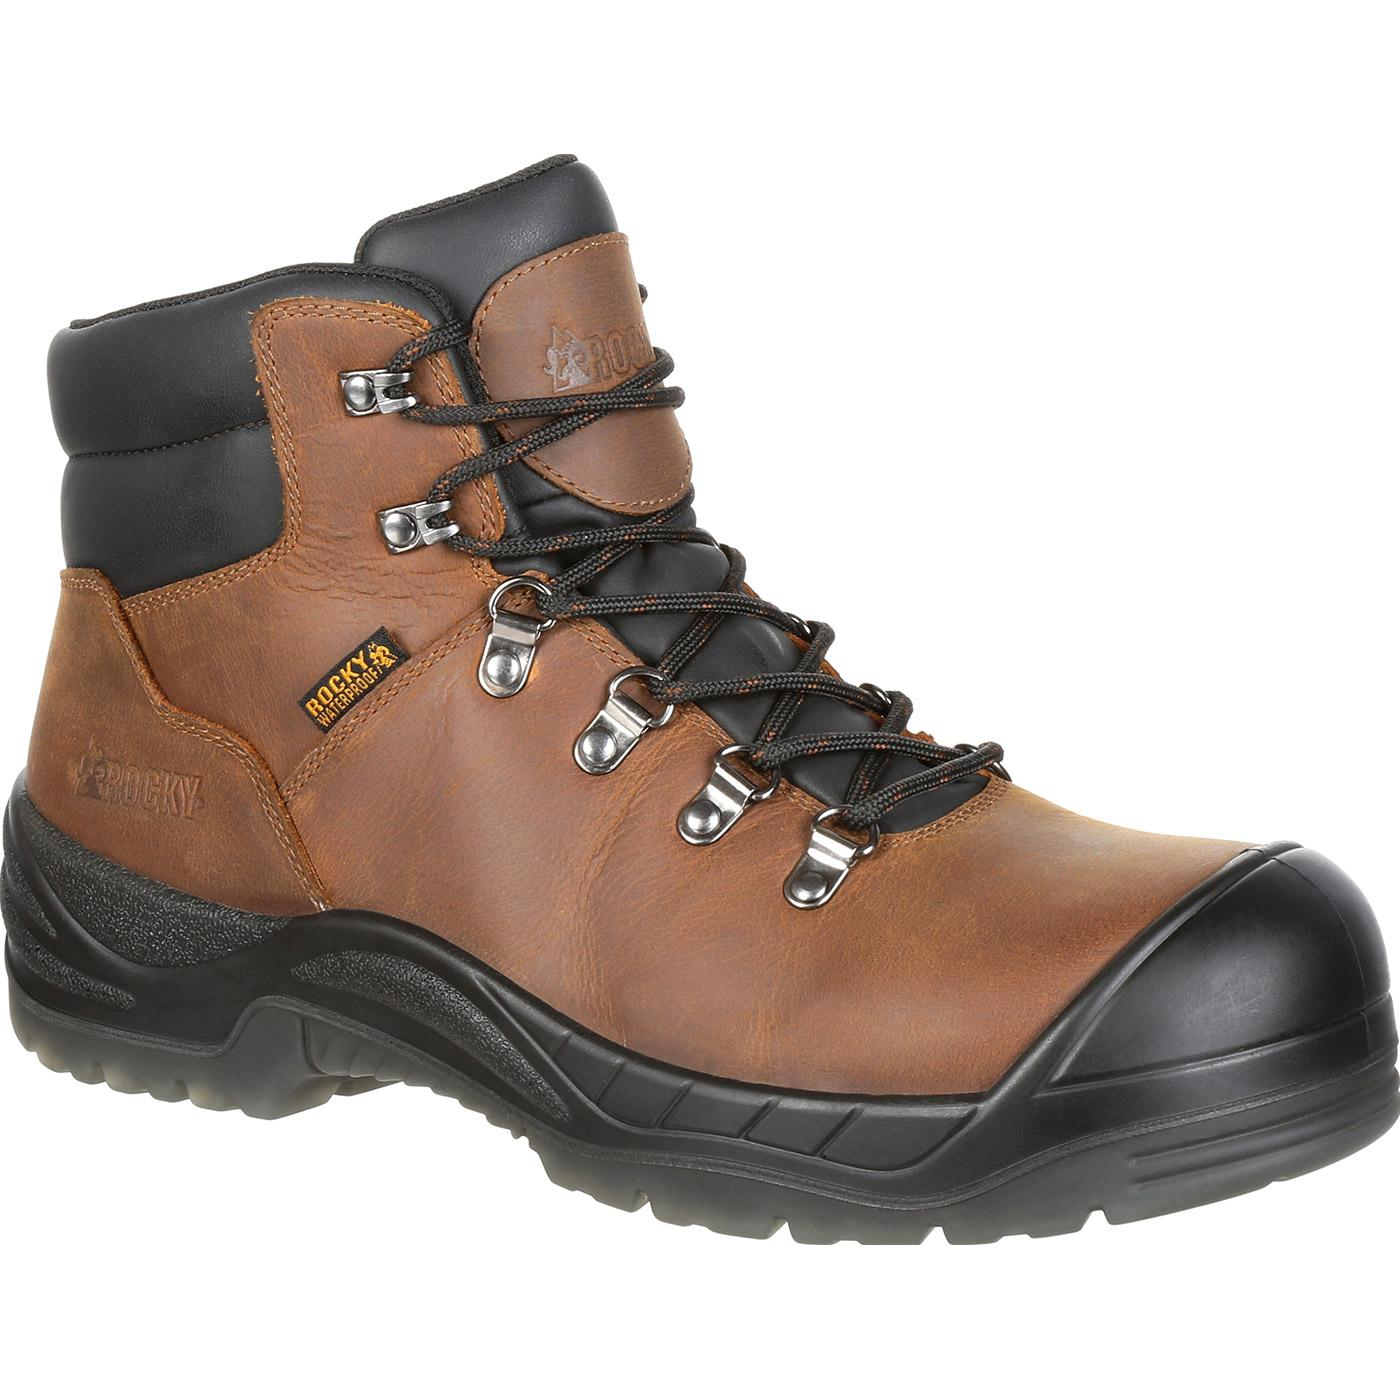 Worksmart Composite Toe Waterproof Work Boot